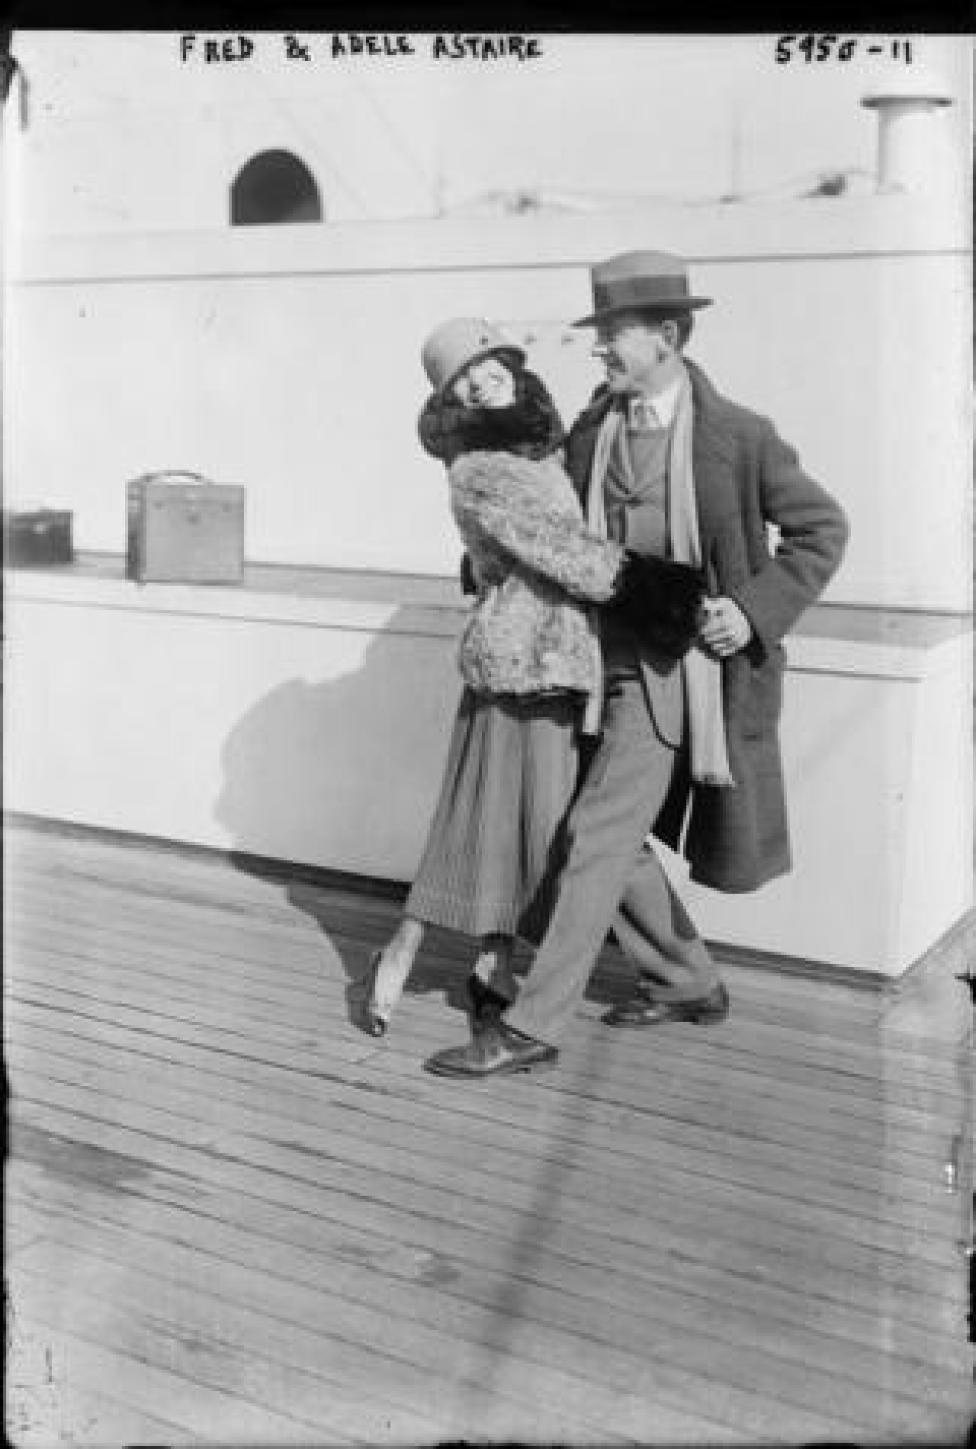 Fred and Adele Astaire bound for London 1922